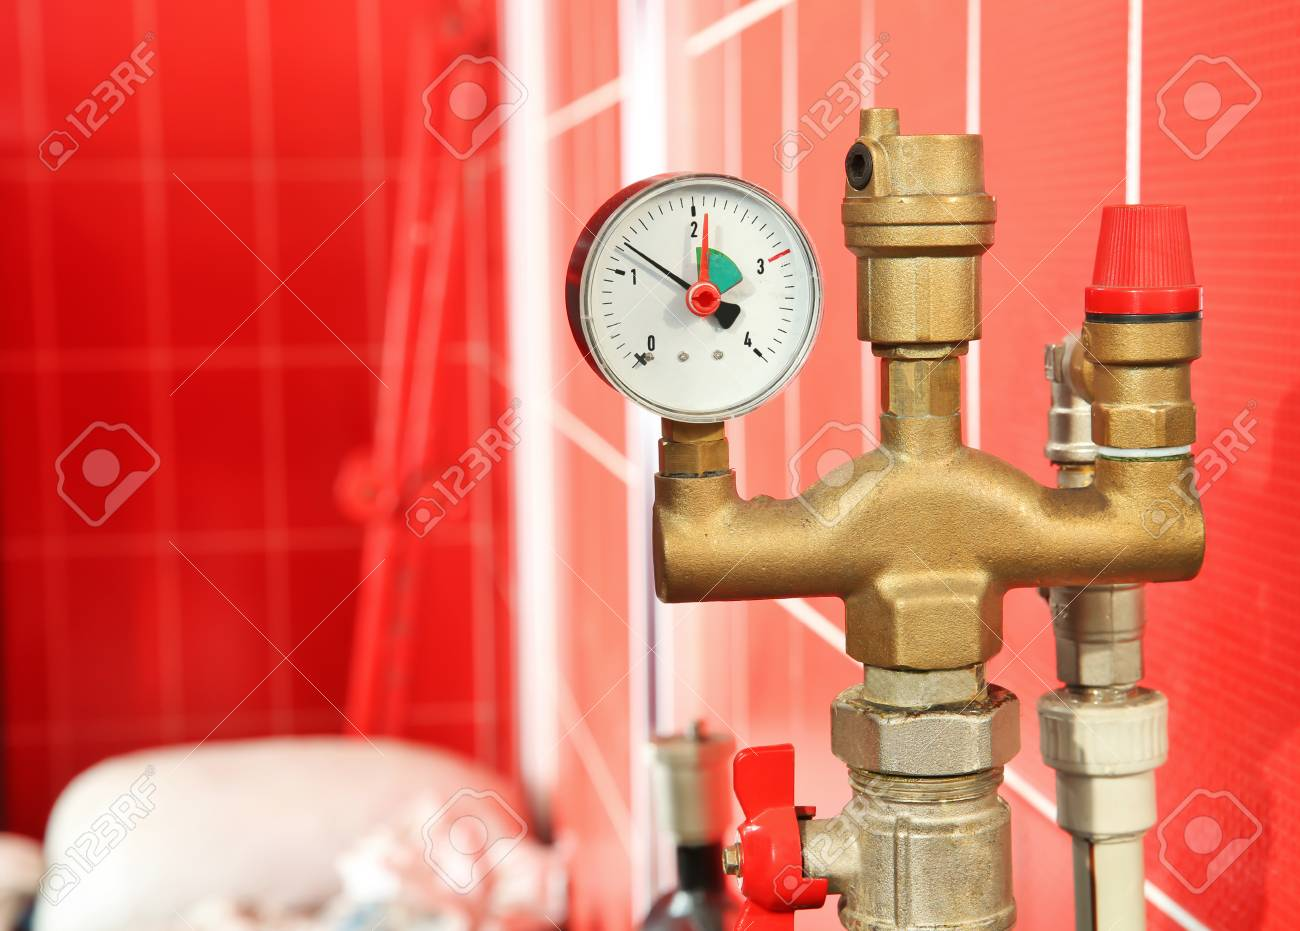 Closein Boiler Part Of Solid Fuel Boiler With Pressure Gauge Close Up